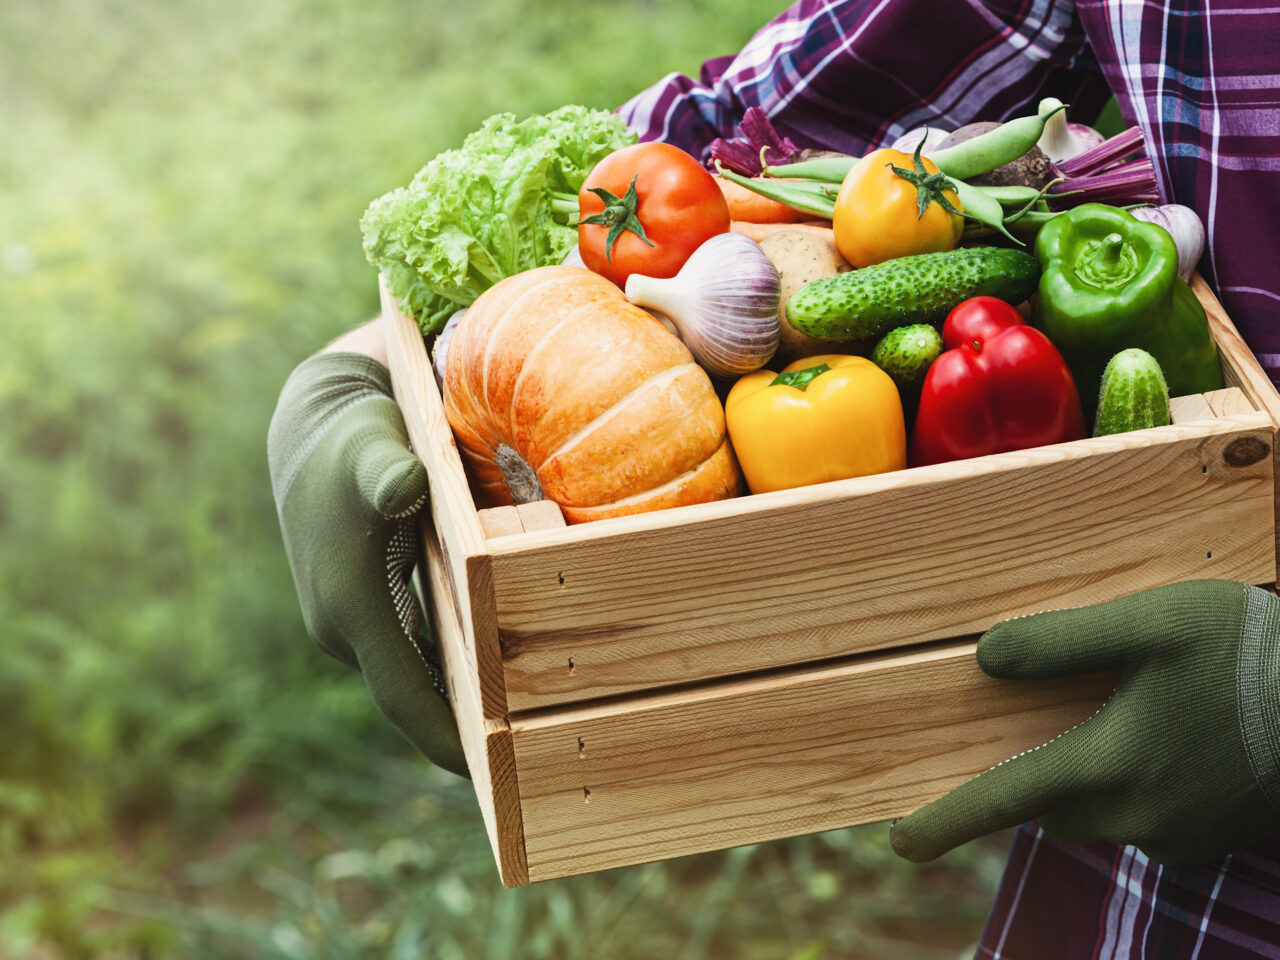 Farmer holds in his hands a wooden box with a vegetables produce on the background of the garden. Fresh and organic food. (Farmer holds in his hands a wooden box with a vegetables produce on the background of the garden. Fresh and organic food., ASCII